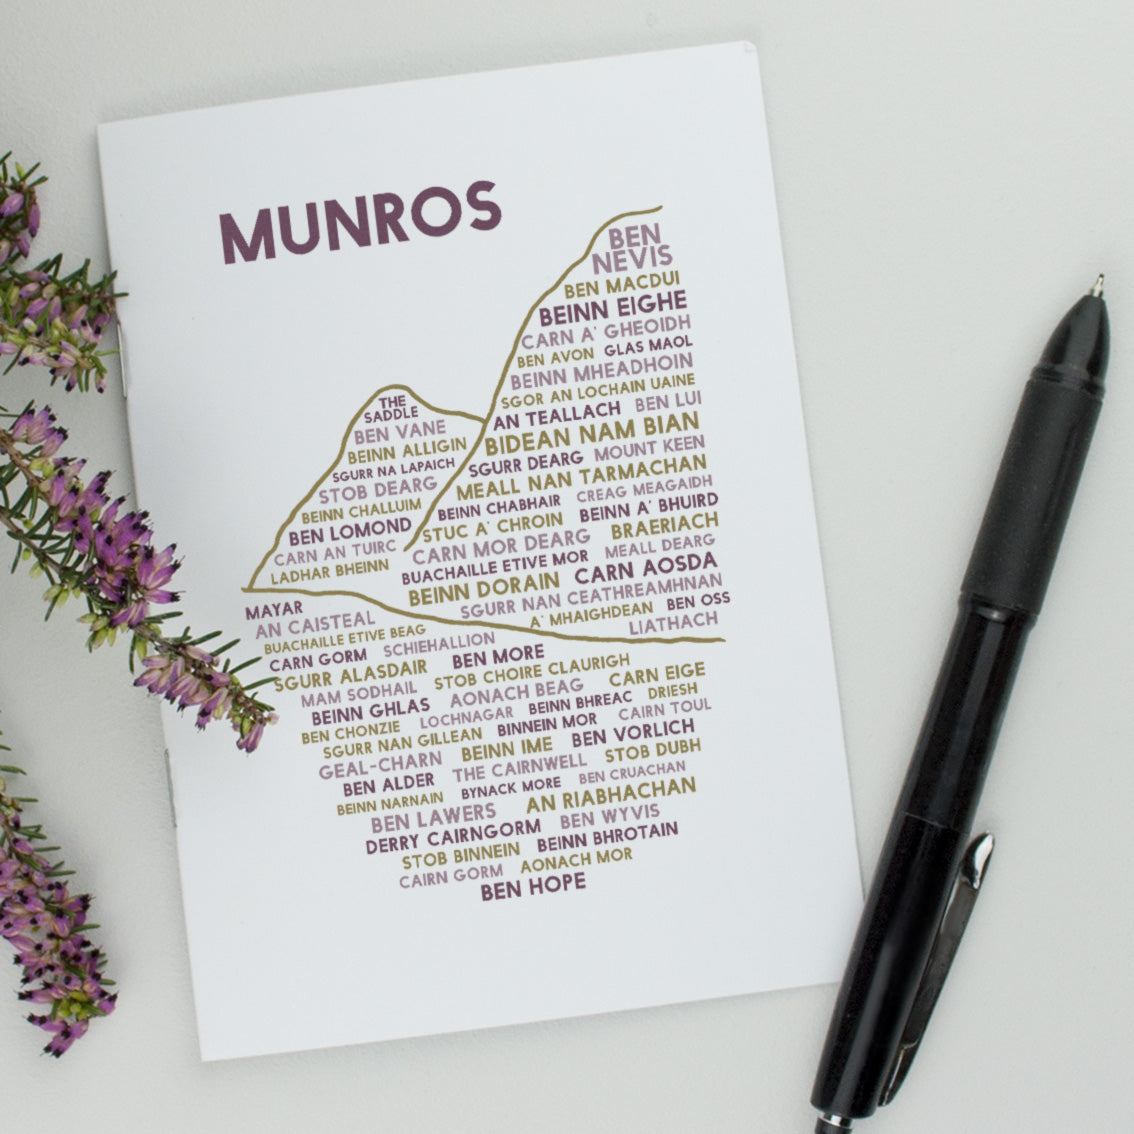 Munros Notebook